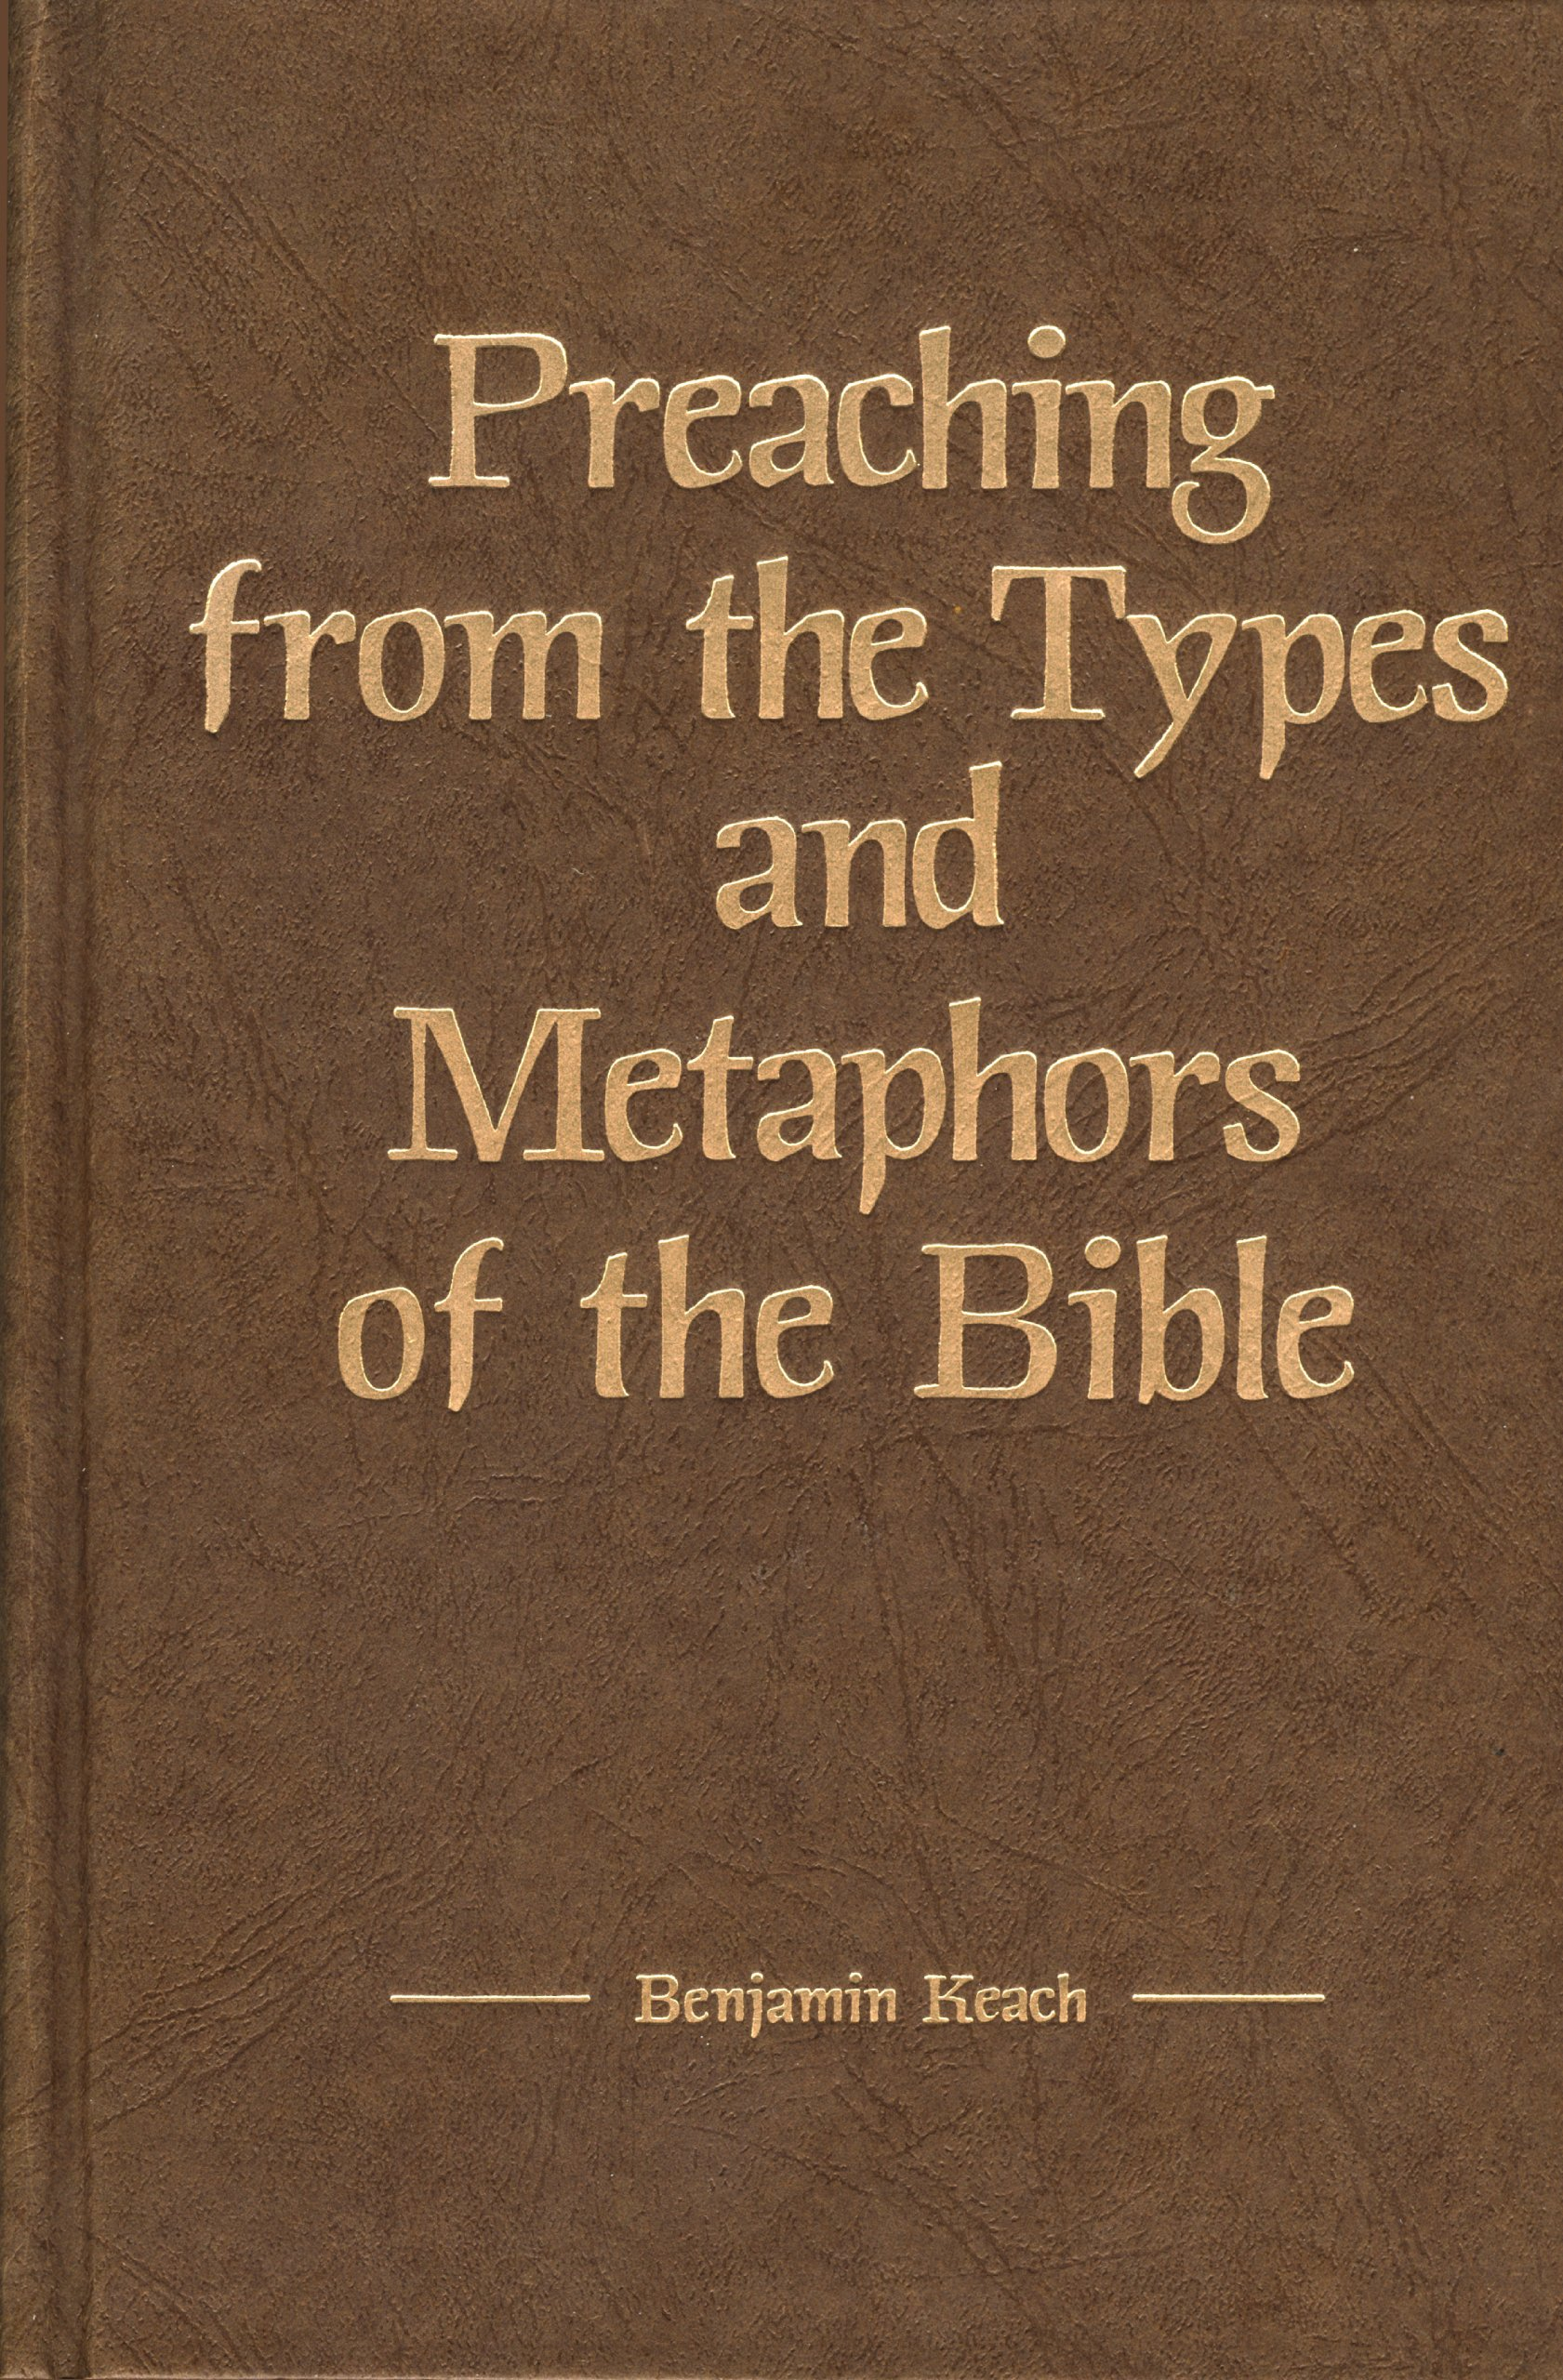 Preaching from the Types and Metaphors of the Bible (Kregel Reprint Library) by Kregel Academic & Professional